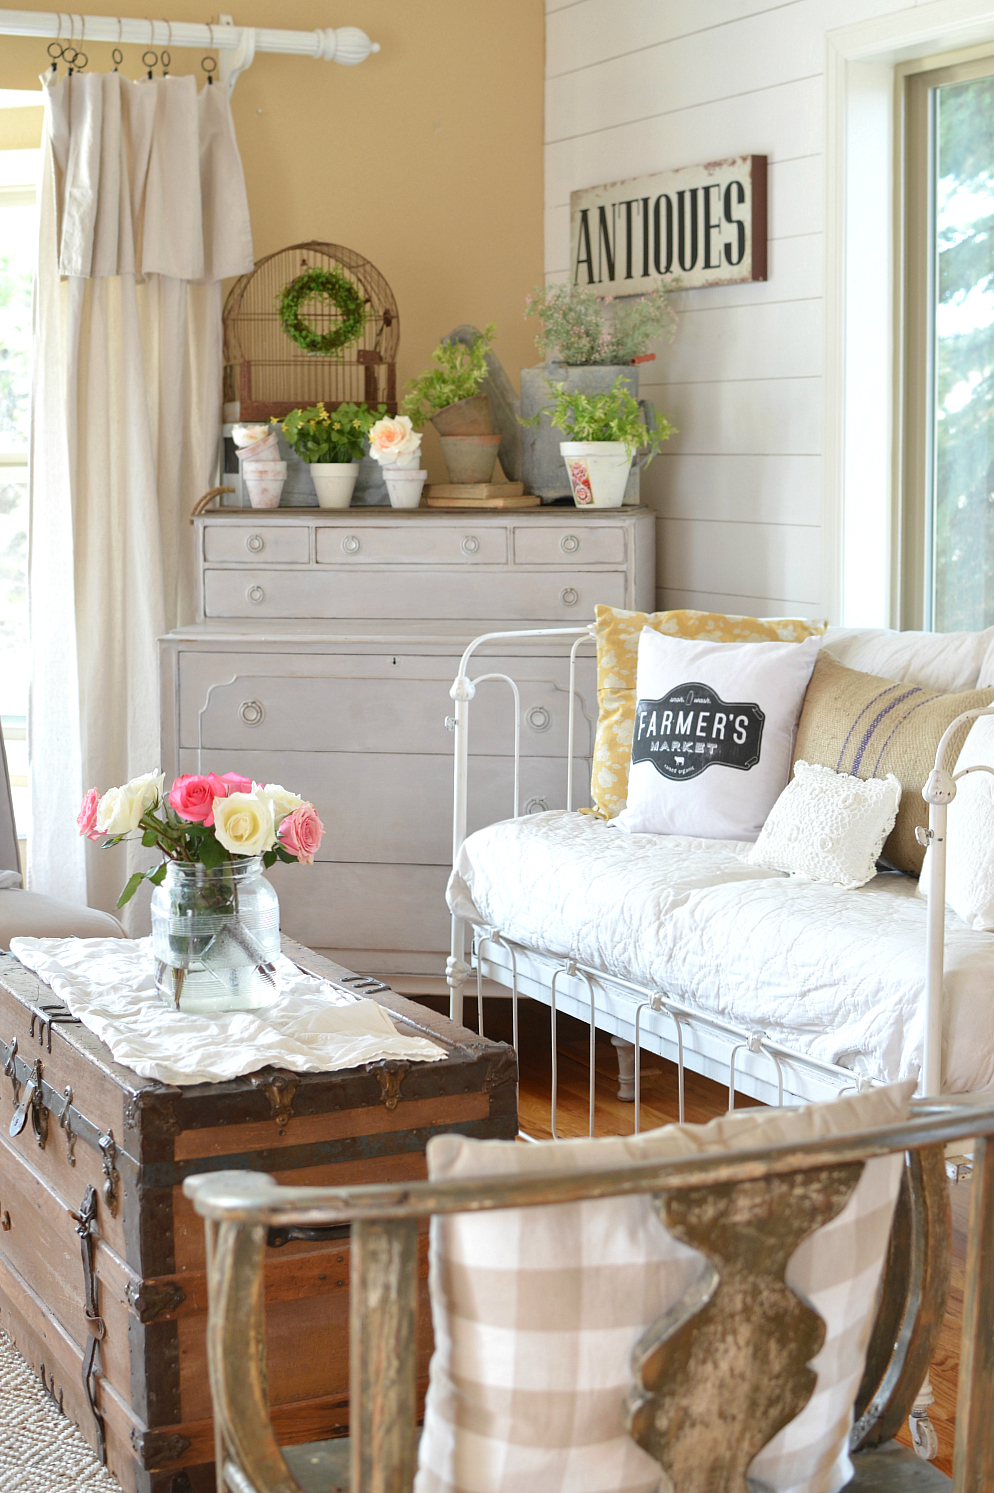 How to Decorate a Room of Vintage Style